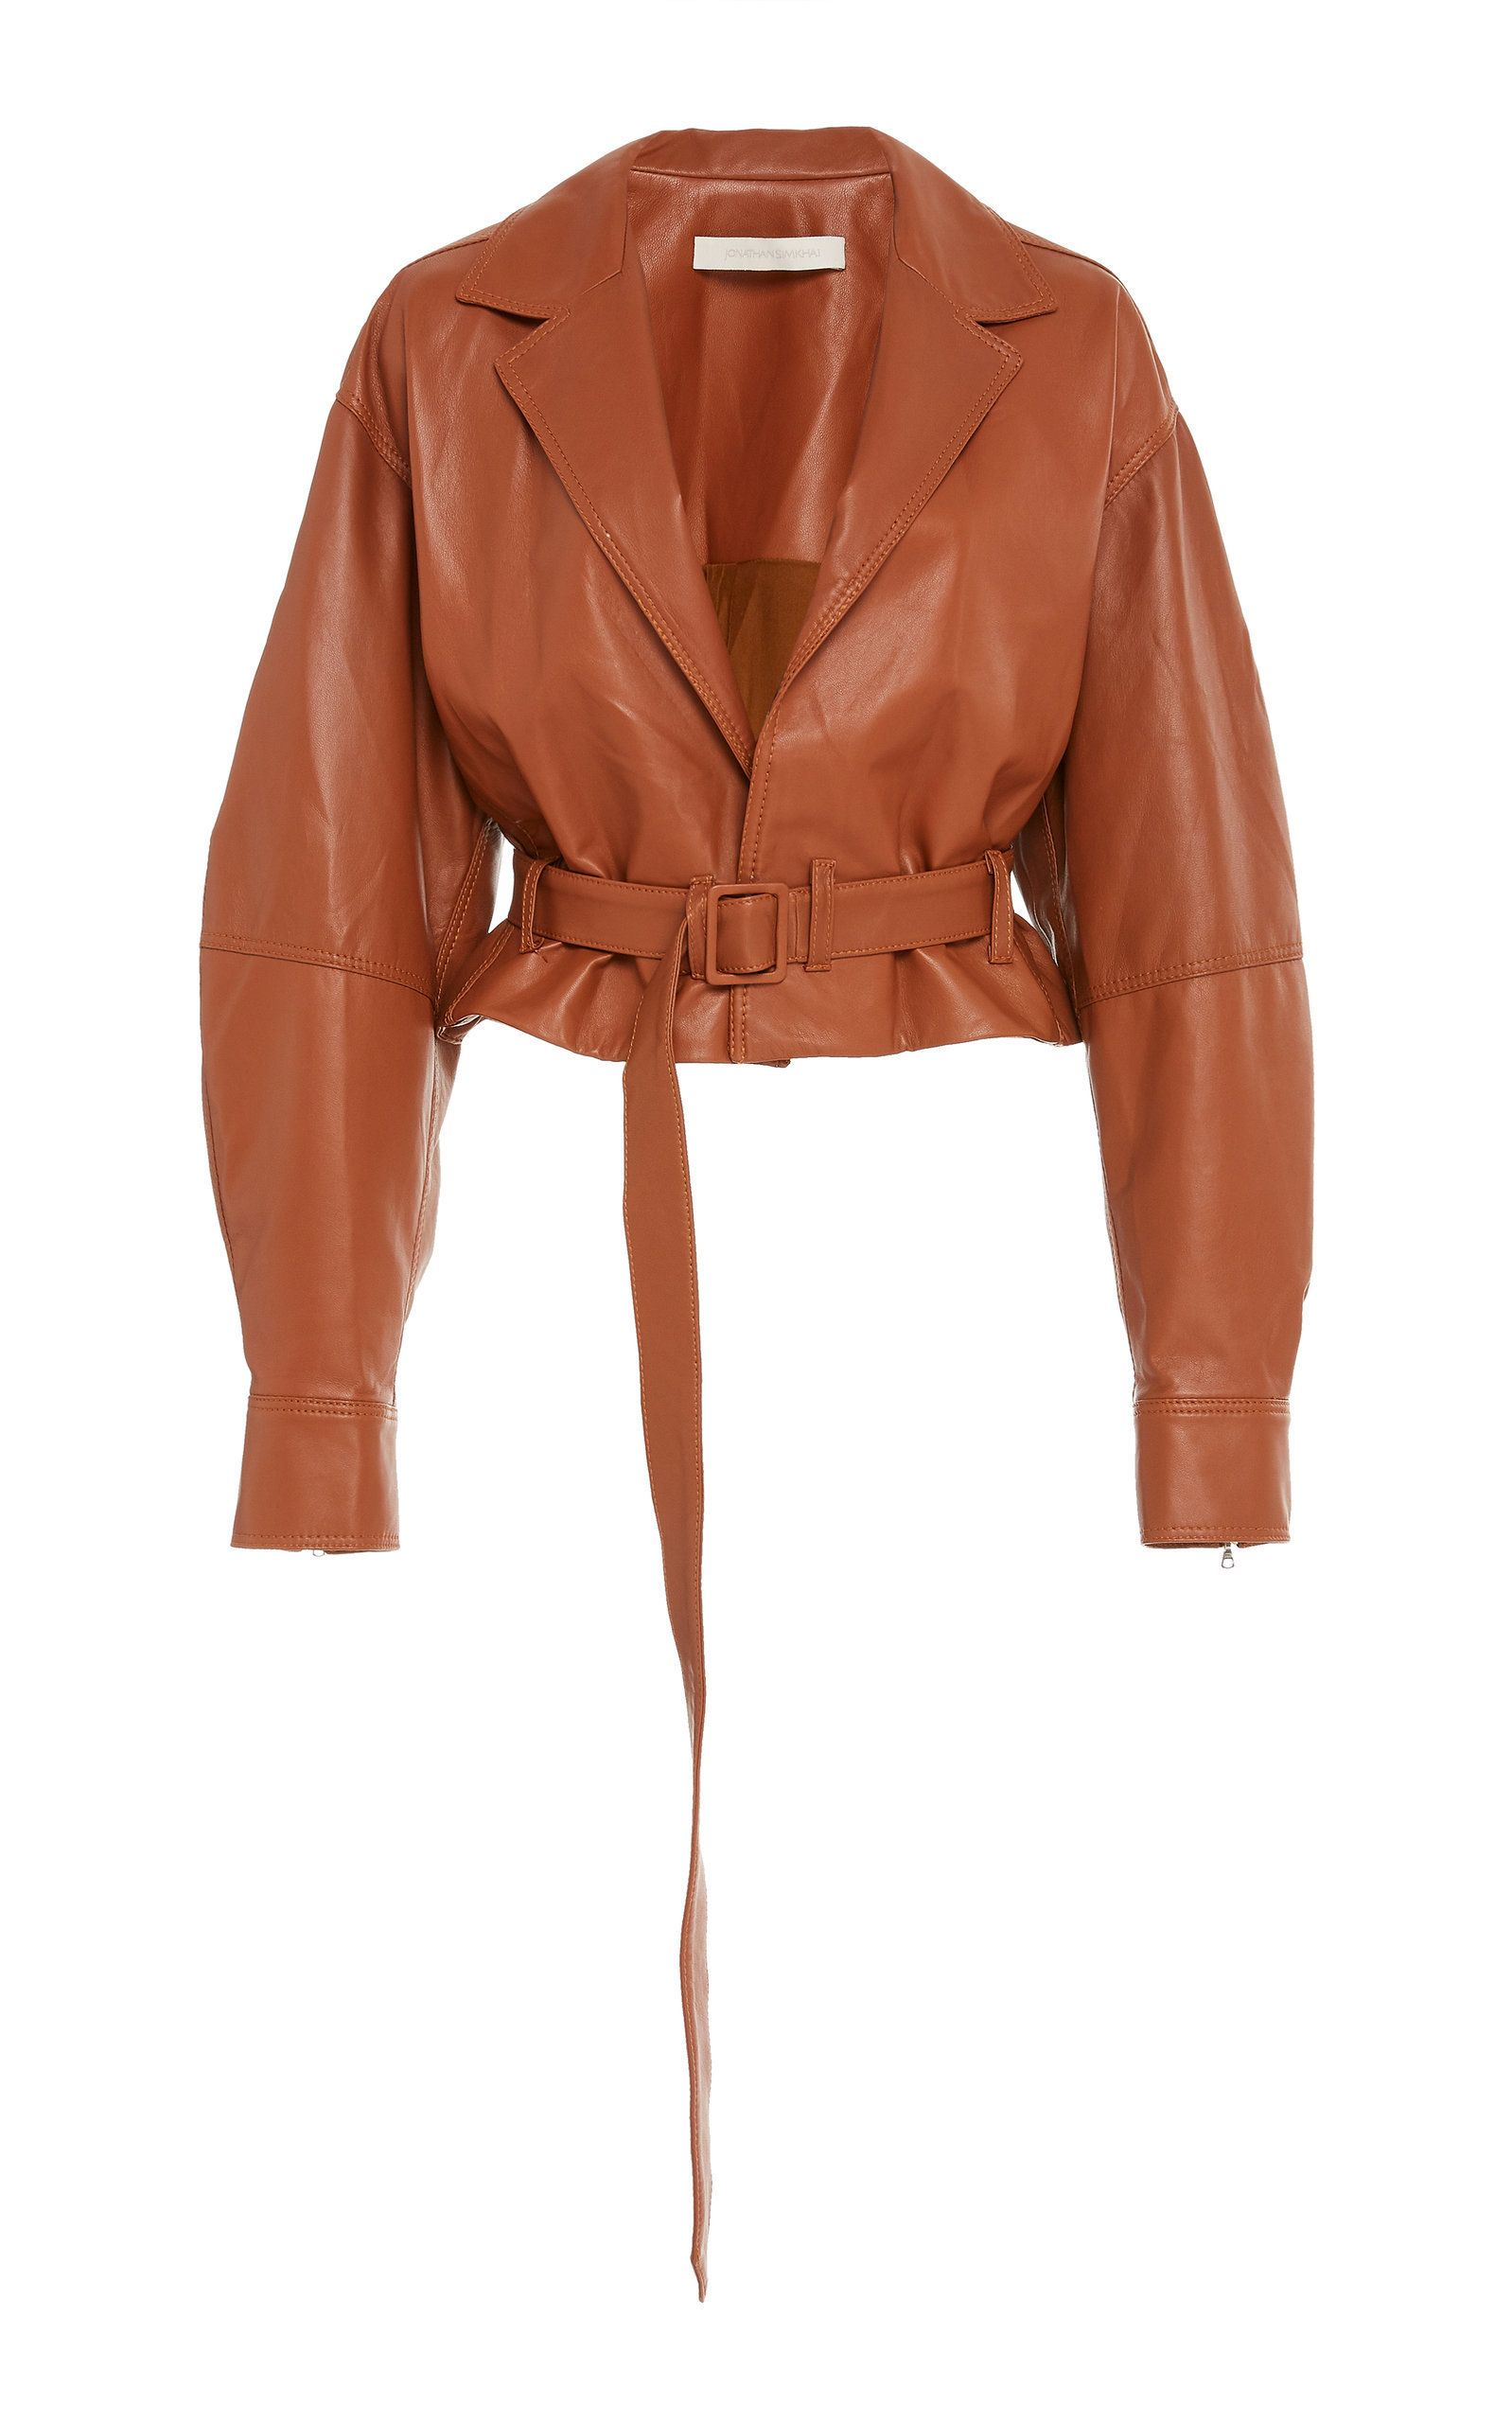 287361498 15 Best Leather Jackets For Women 2019 - Leather Jackets at Every Price  Point